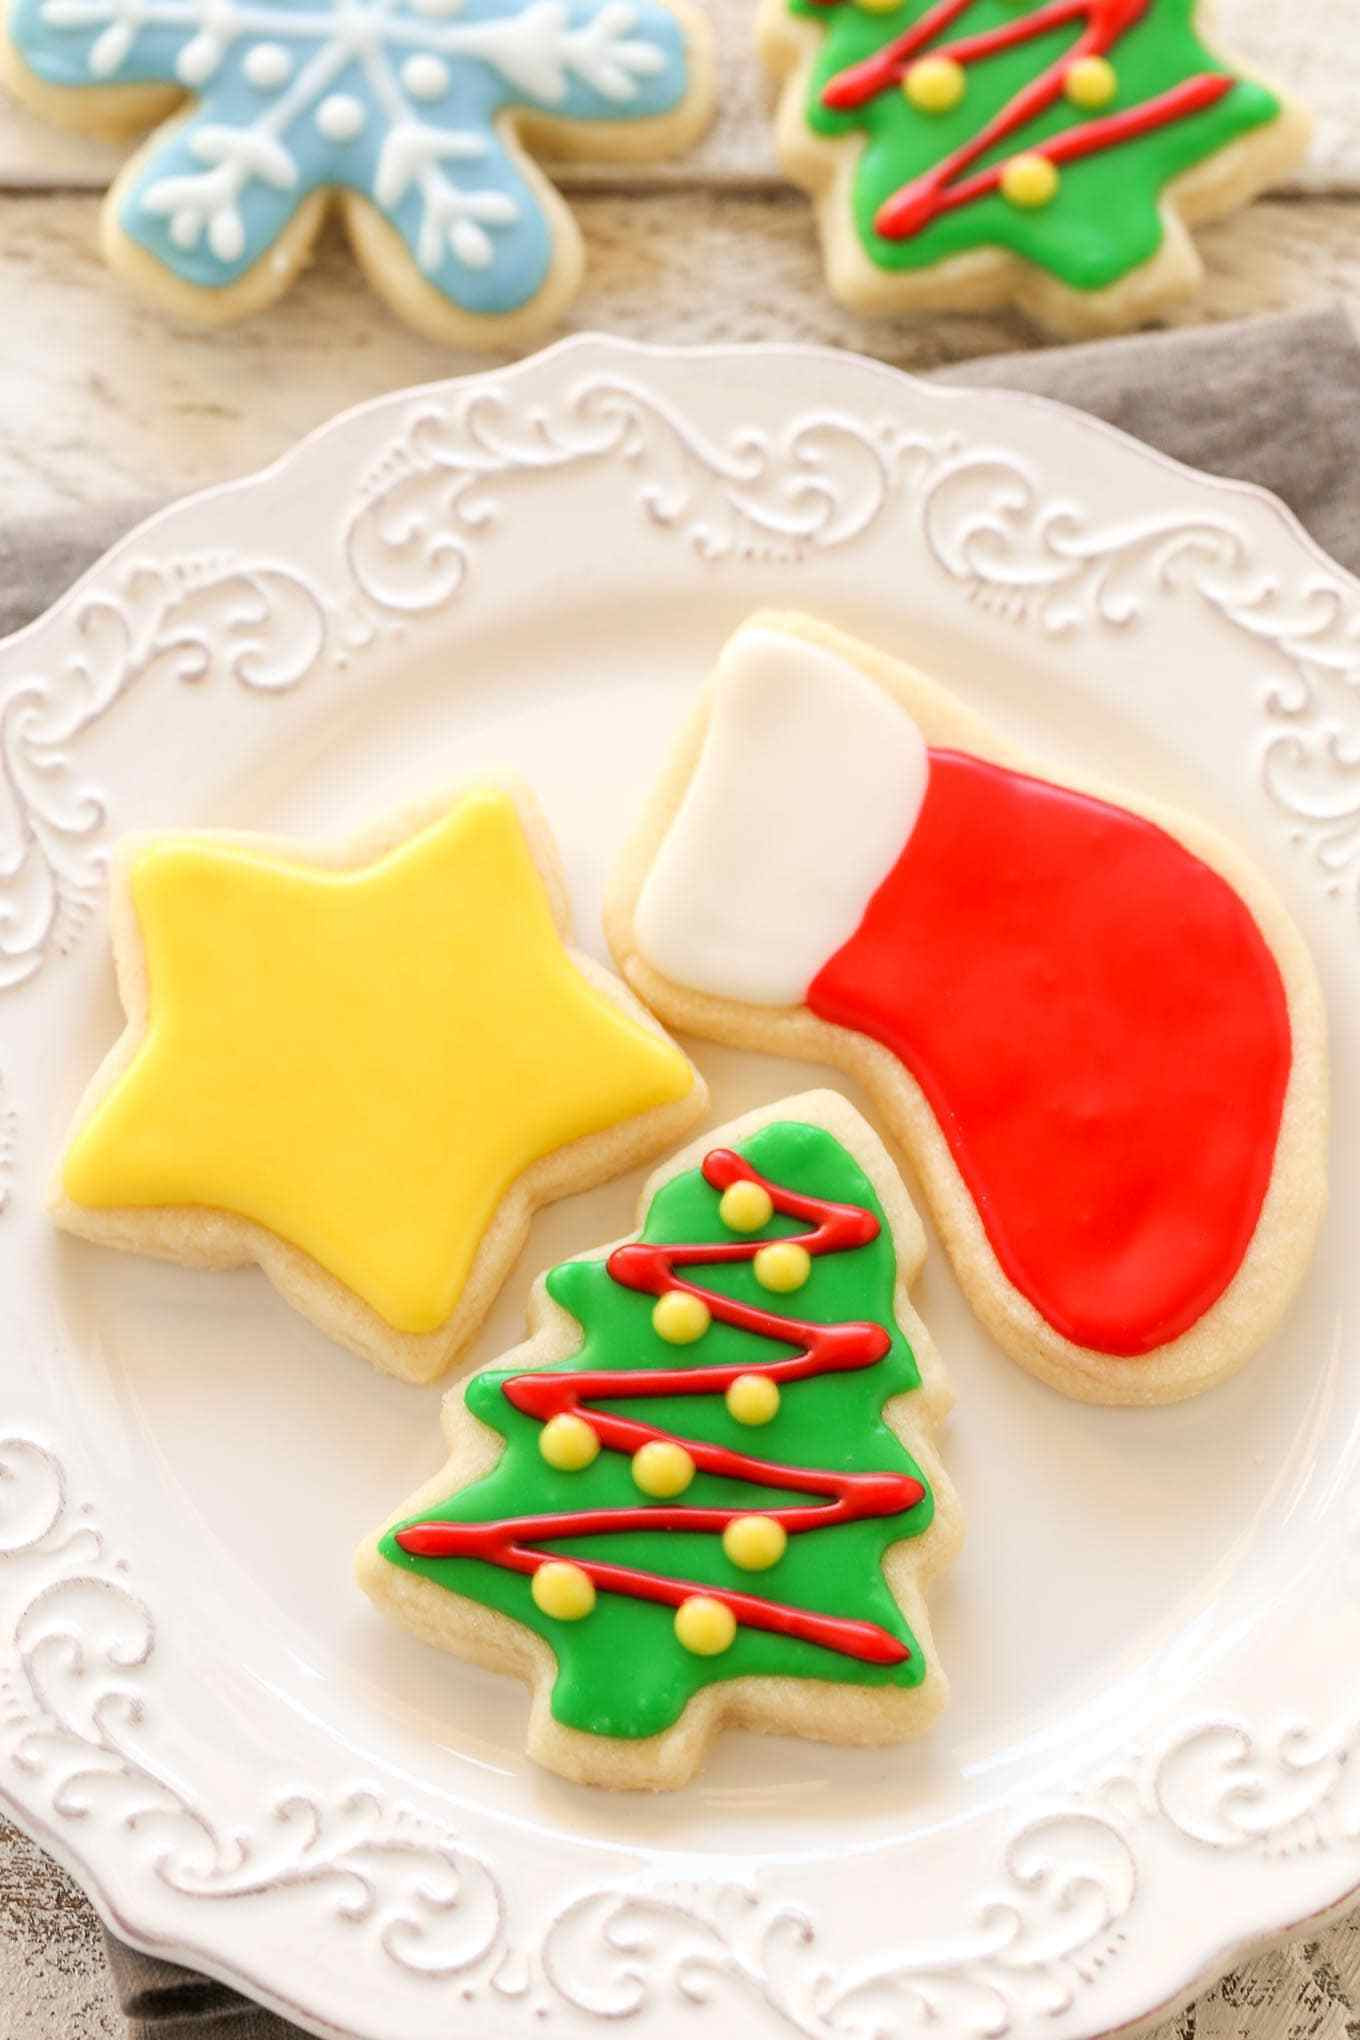 Sugar Cookies Recipe Christmas  Soft Christmas Cut Out Sugar Cookies Live Well Bake ten